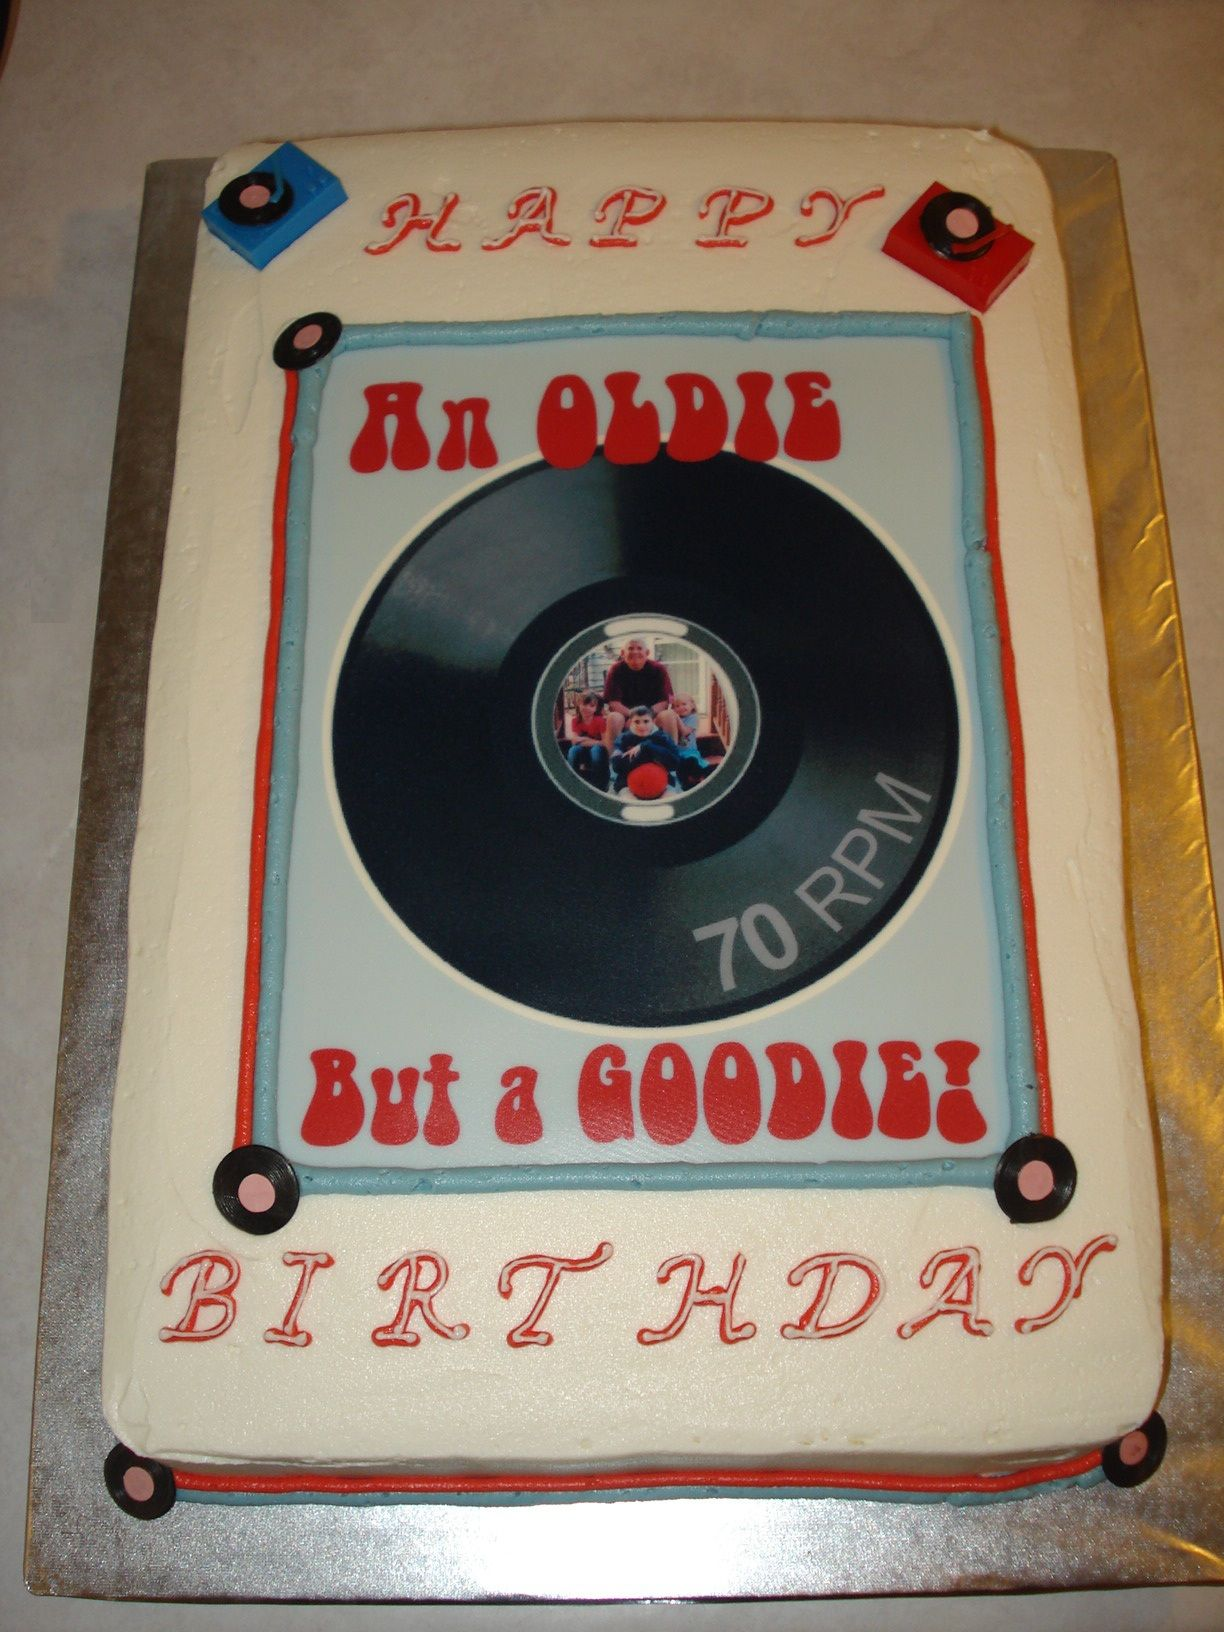 70th Birthday cake with edible image and record player